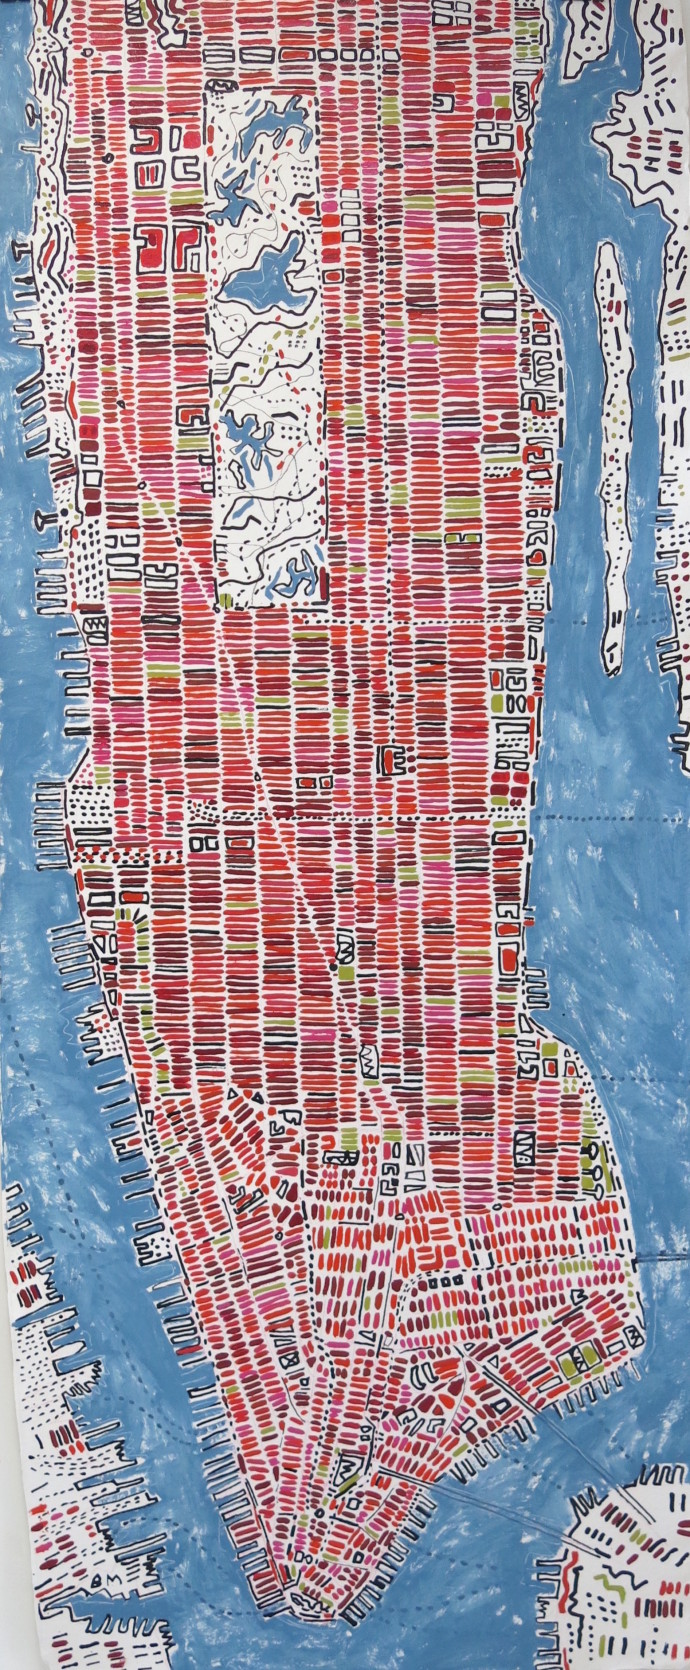 <div class=&#34;artist&#34;><strong>Barbara Macfarlane</strong></div><div class=&#34;title&#34;><em>Long Manhattan Rosehip</em>, 2017</div><div class=&#34;medium&#34;>oil and ink on handmade Khadi paper</div><div class=&#34;dimensions&#34;>200 x 80 cm<br>78 3/4 x 31 1/2 in</div>